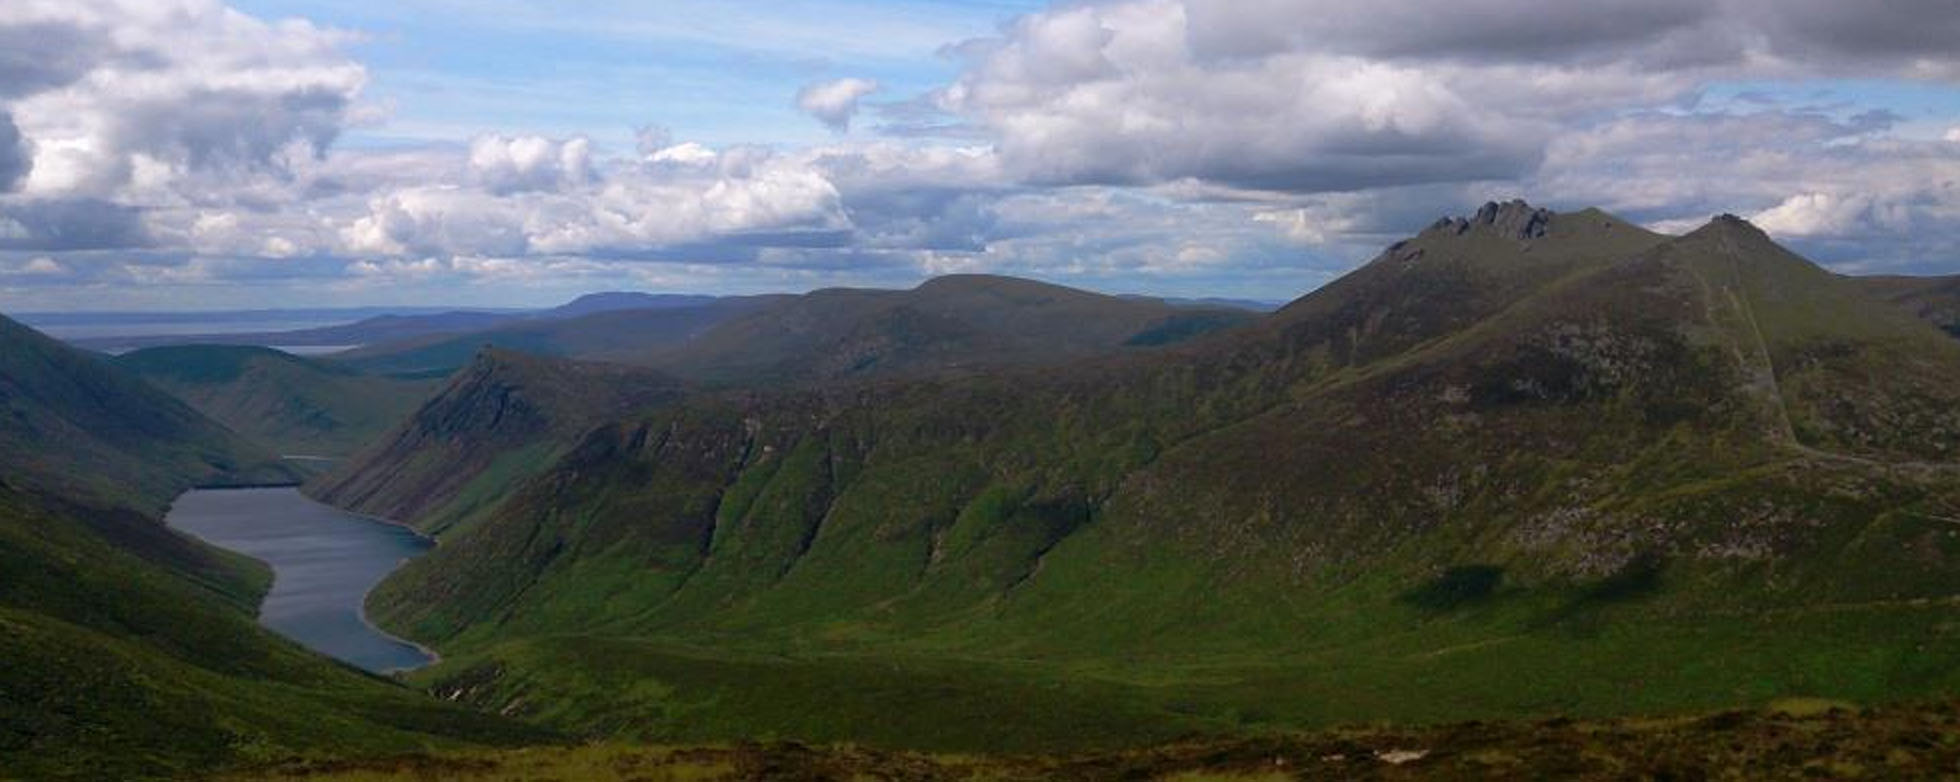 Mourne Mountains Guided Hike